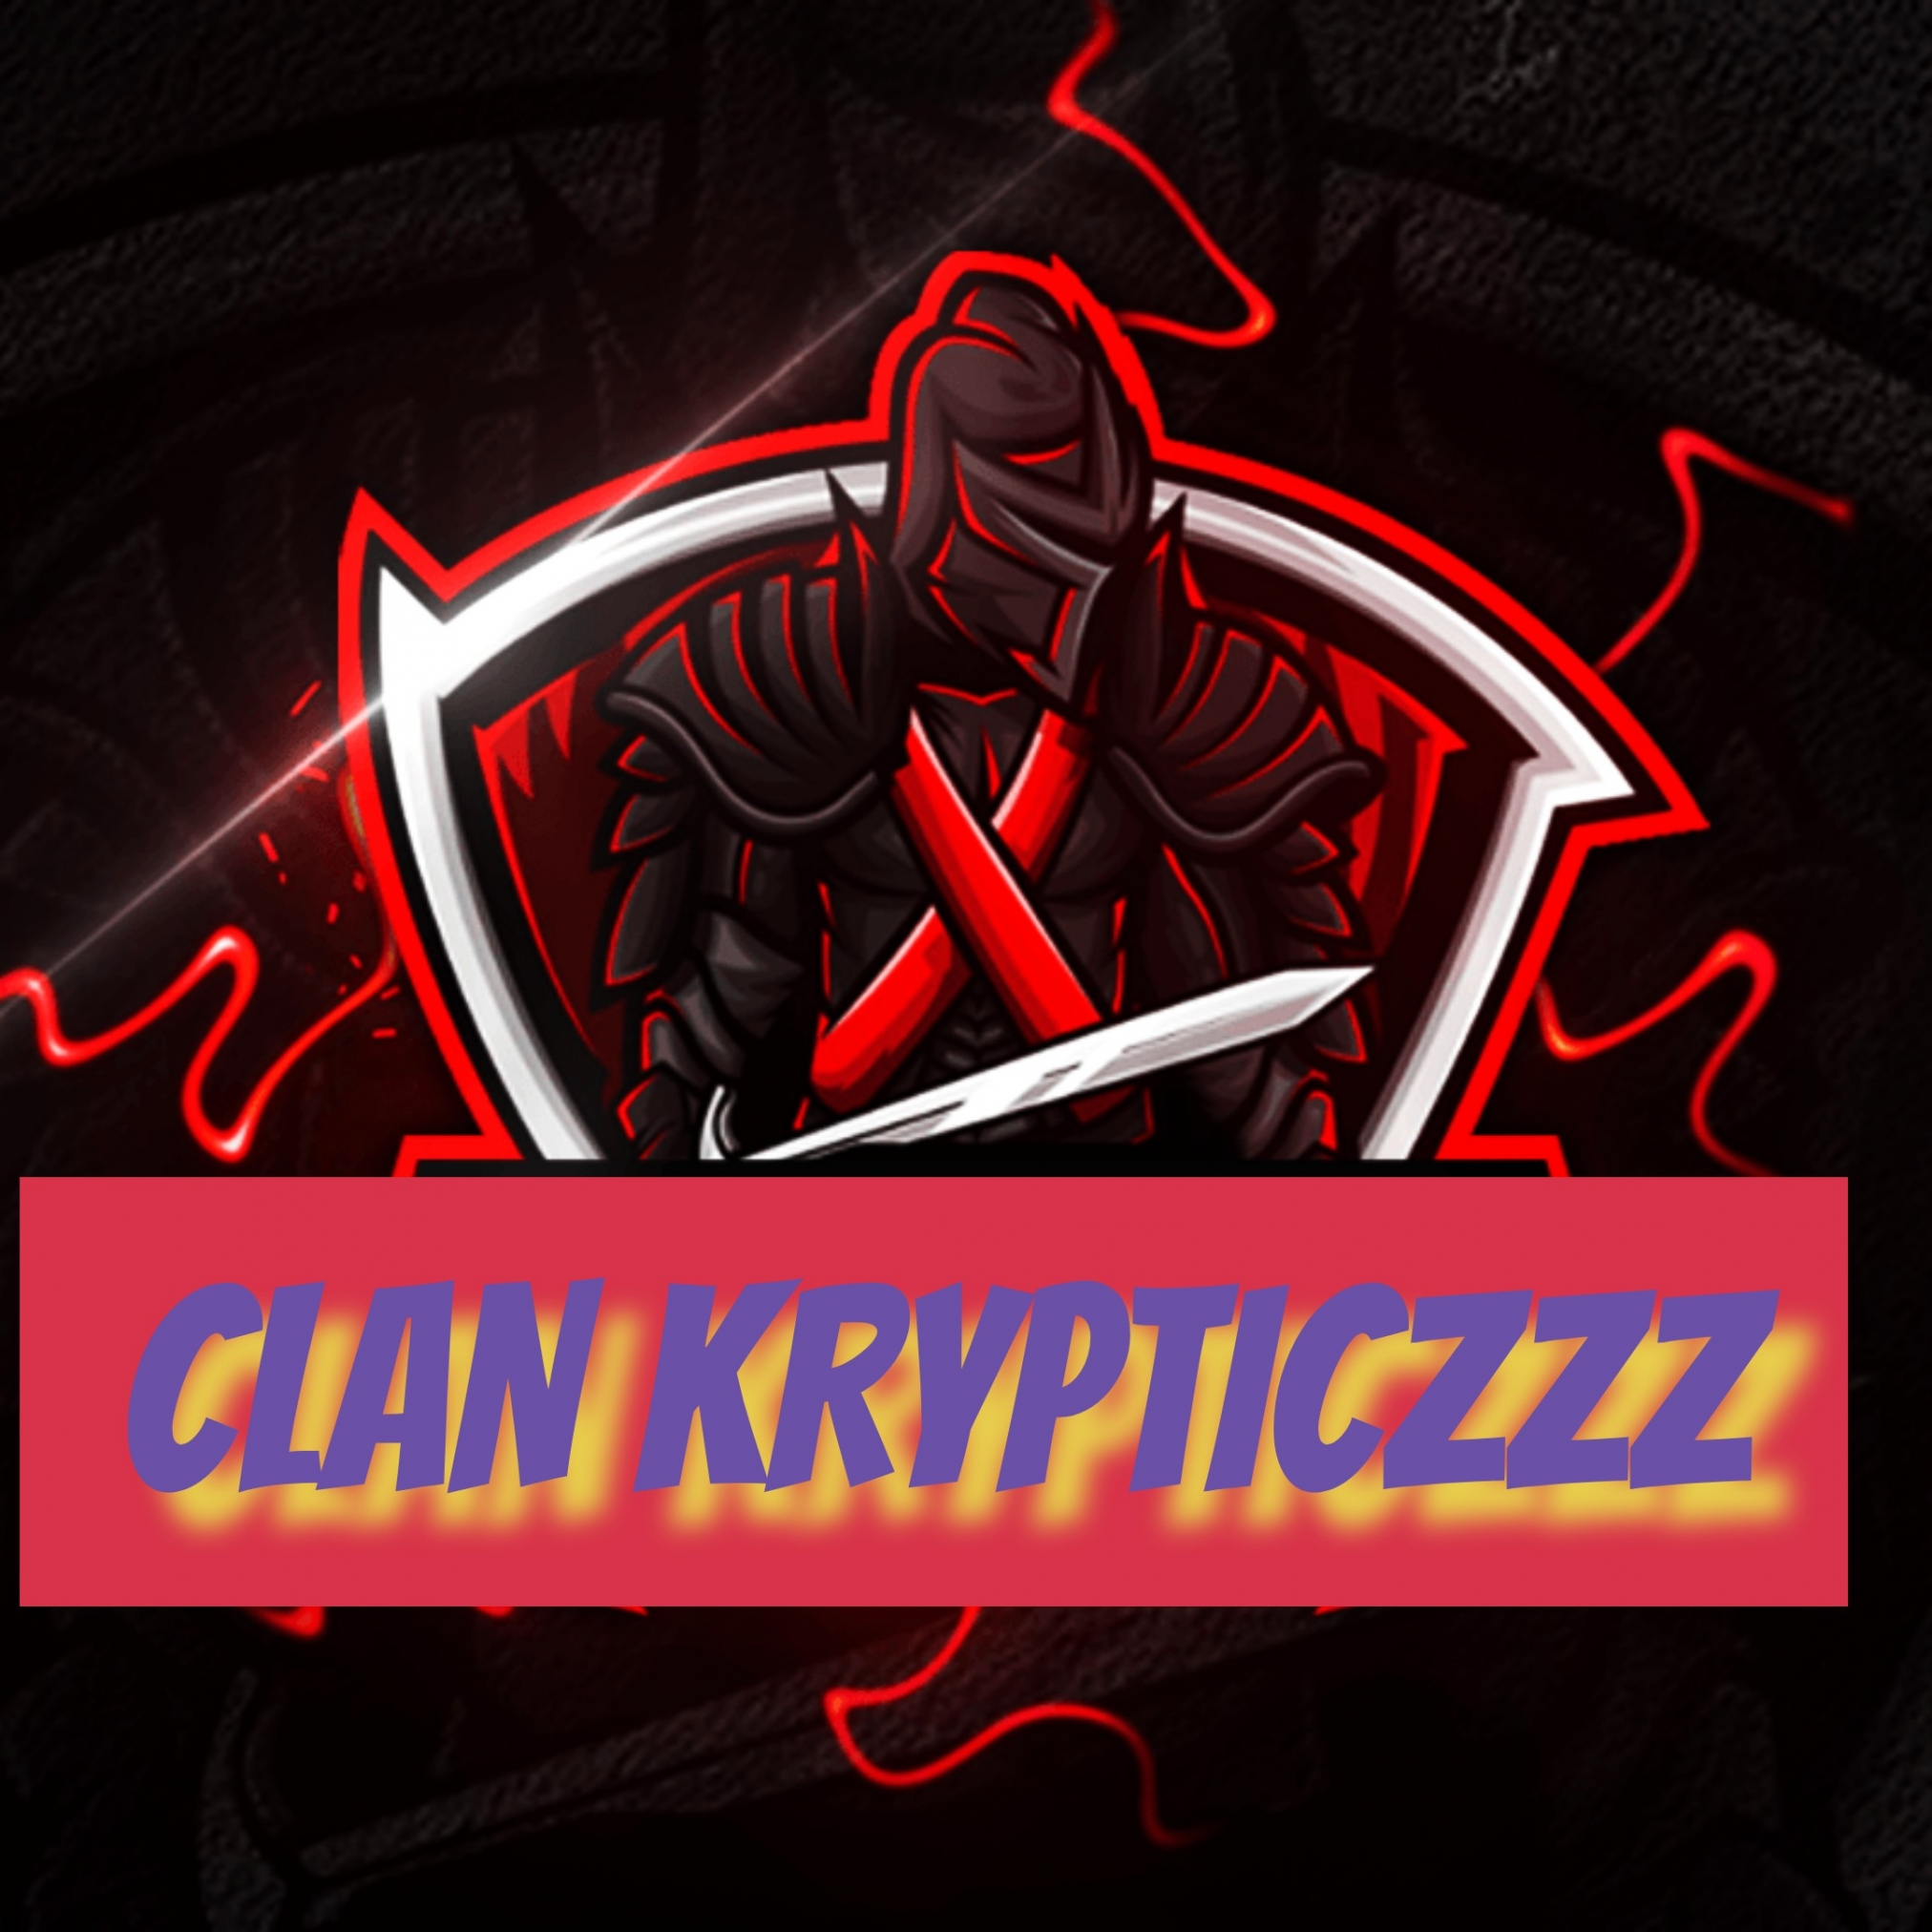 Clan Krypticzzz